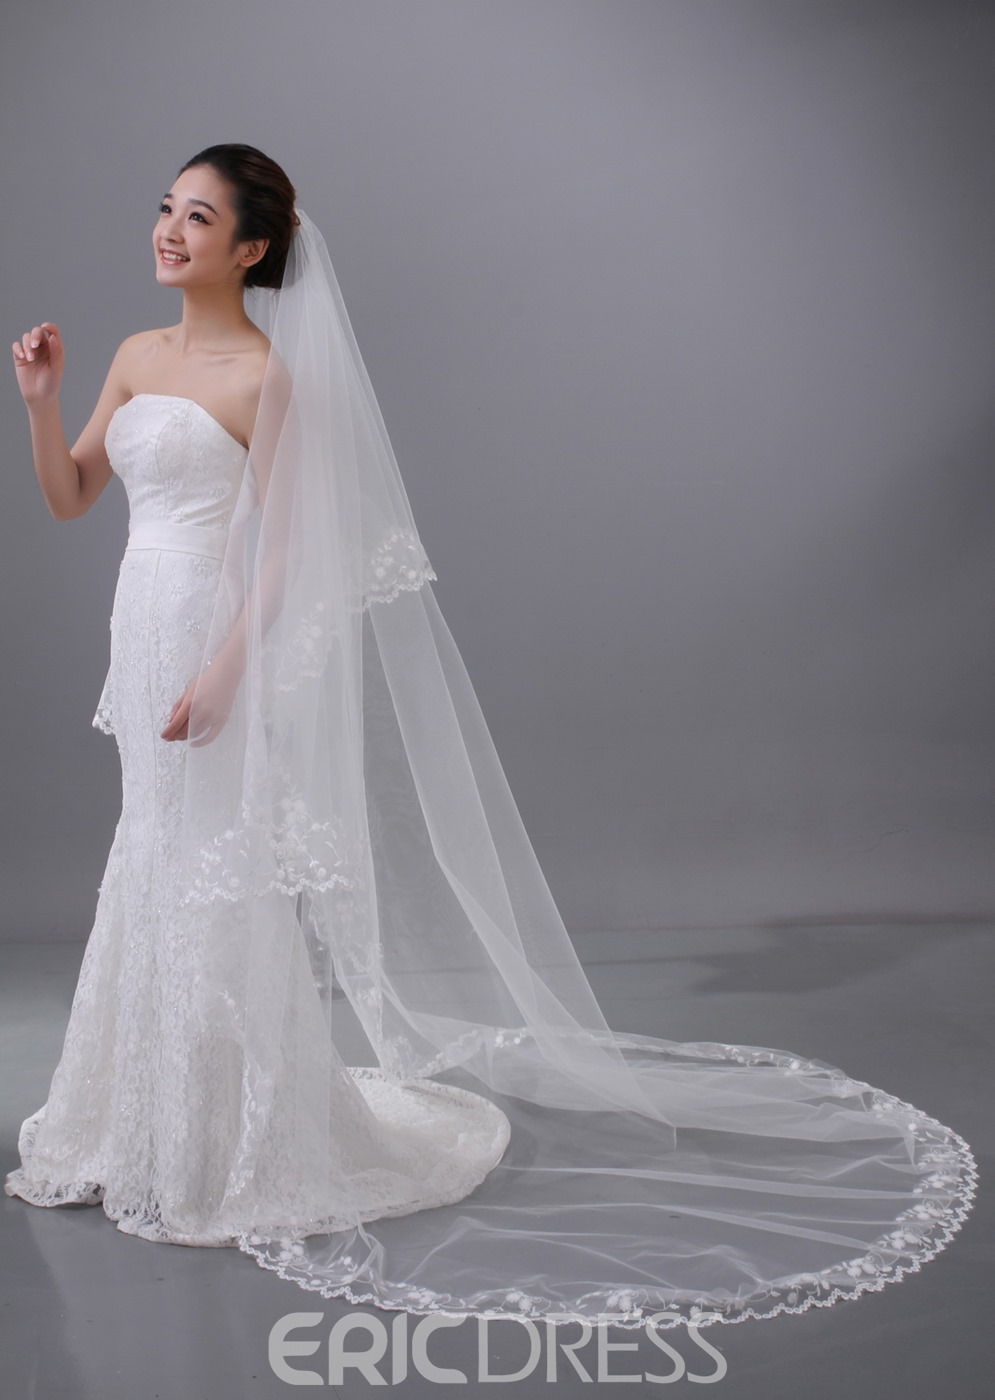 Brillant Chapel Bridal Veil with Lace Edge